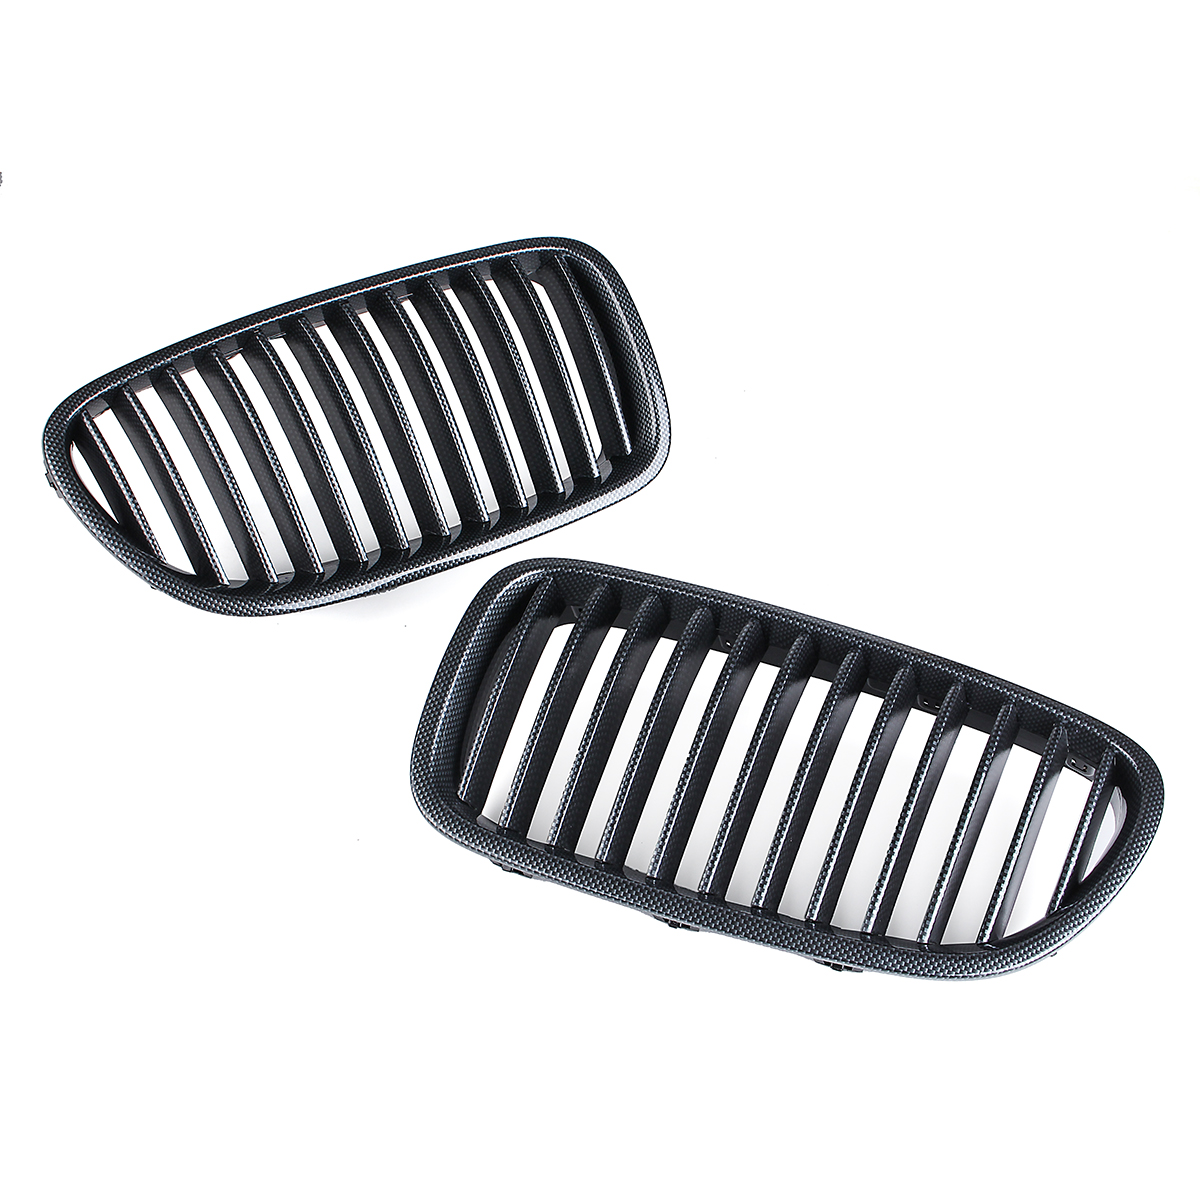 Pair Carbon Fiber Abs Front Kidney Grille For Bmw F18 F10 F11 5 Series Sale